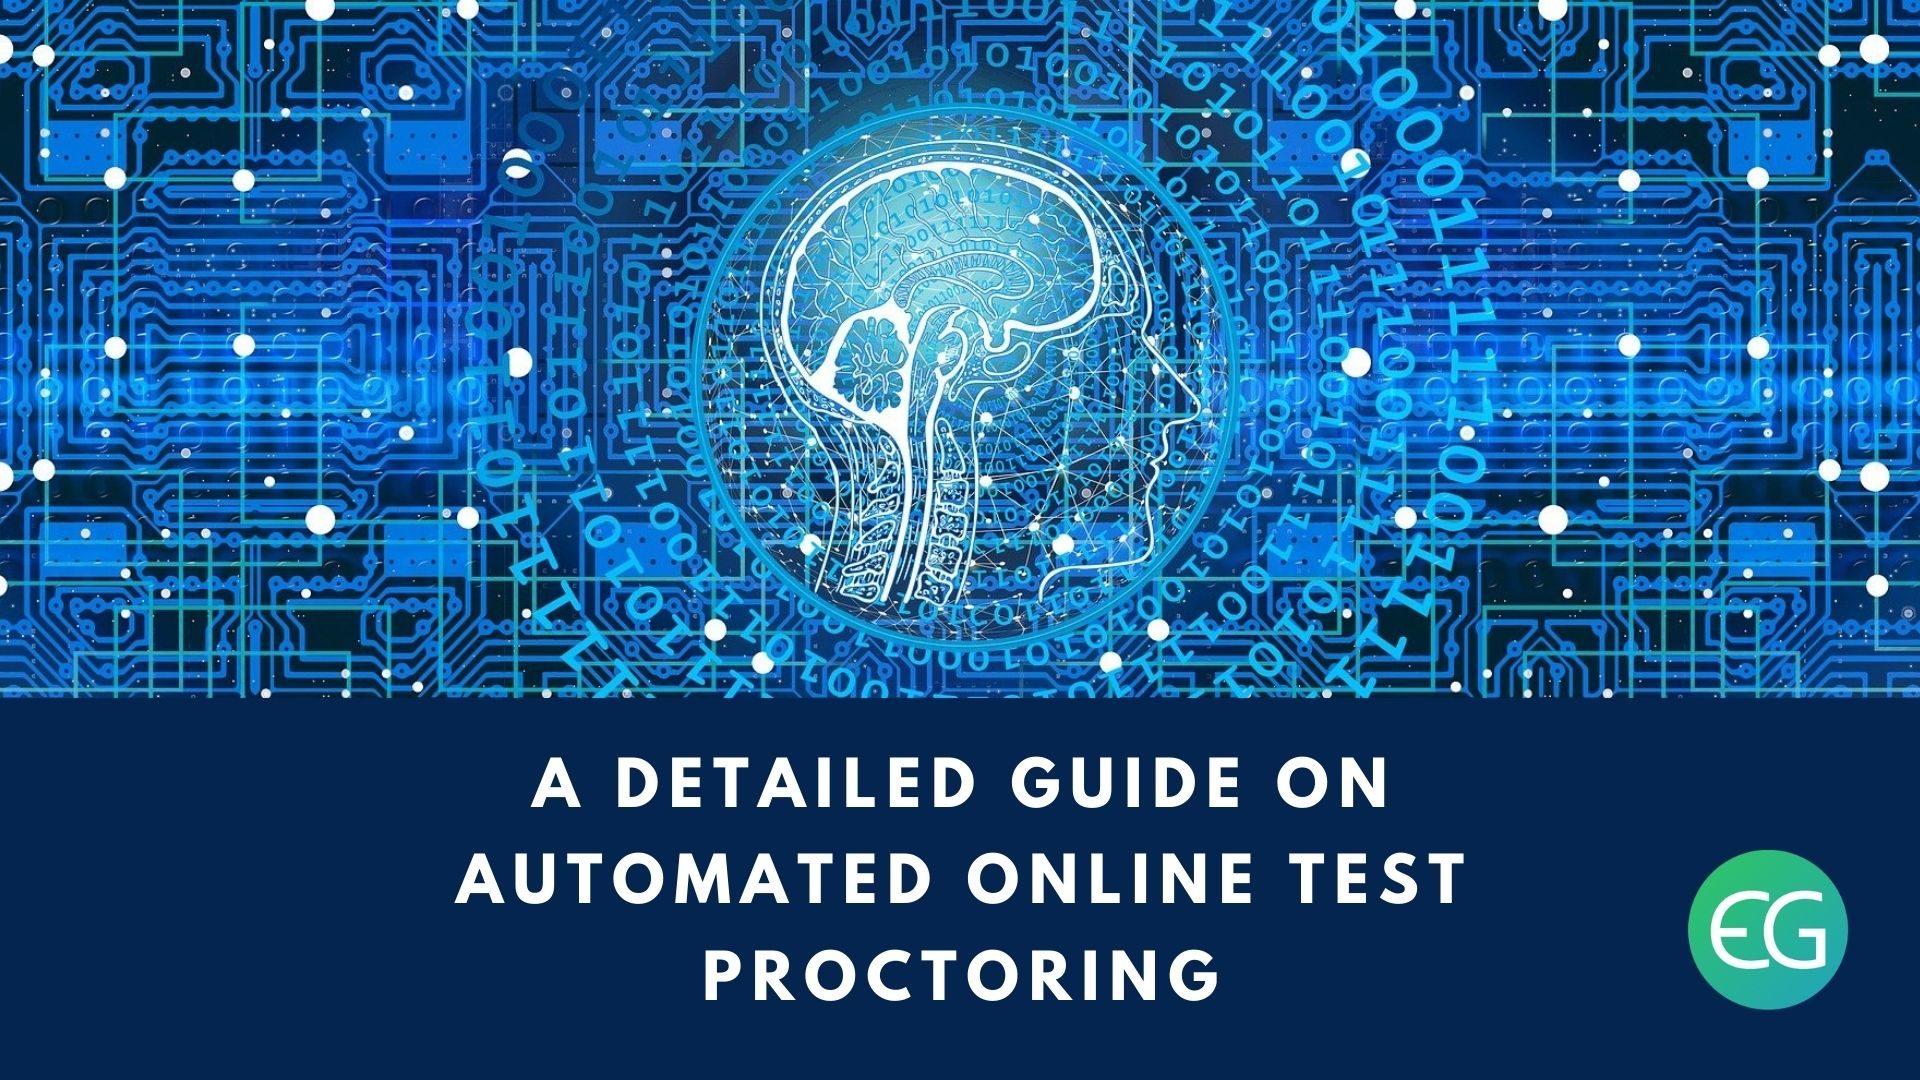 Automated online test proctoring